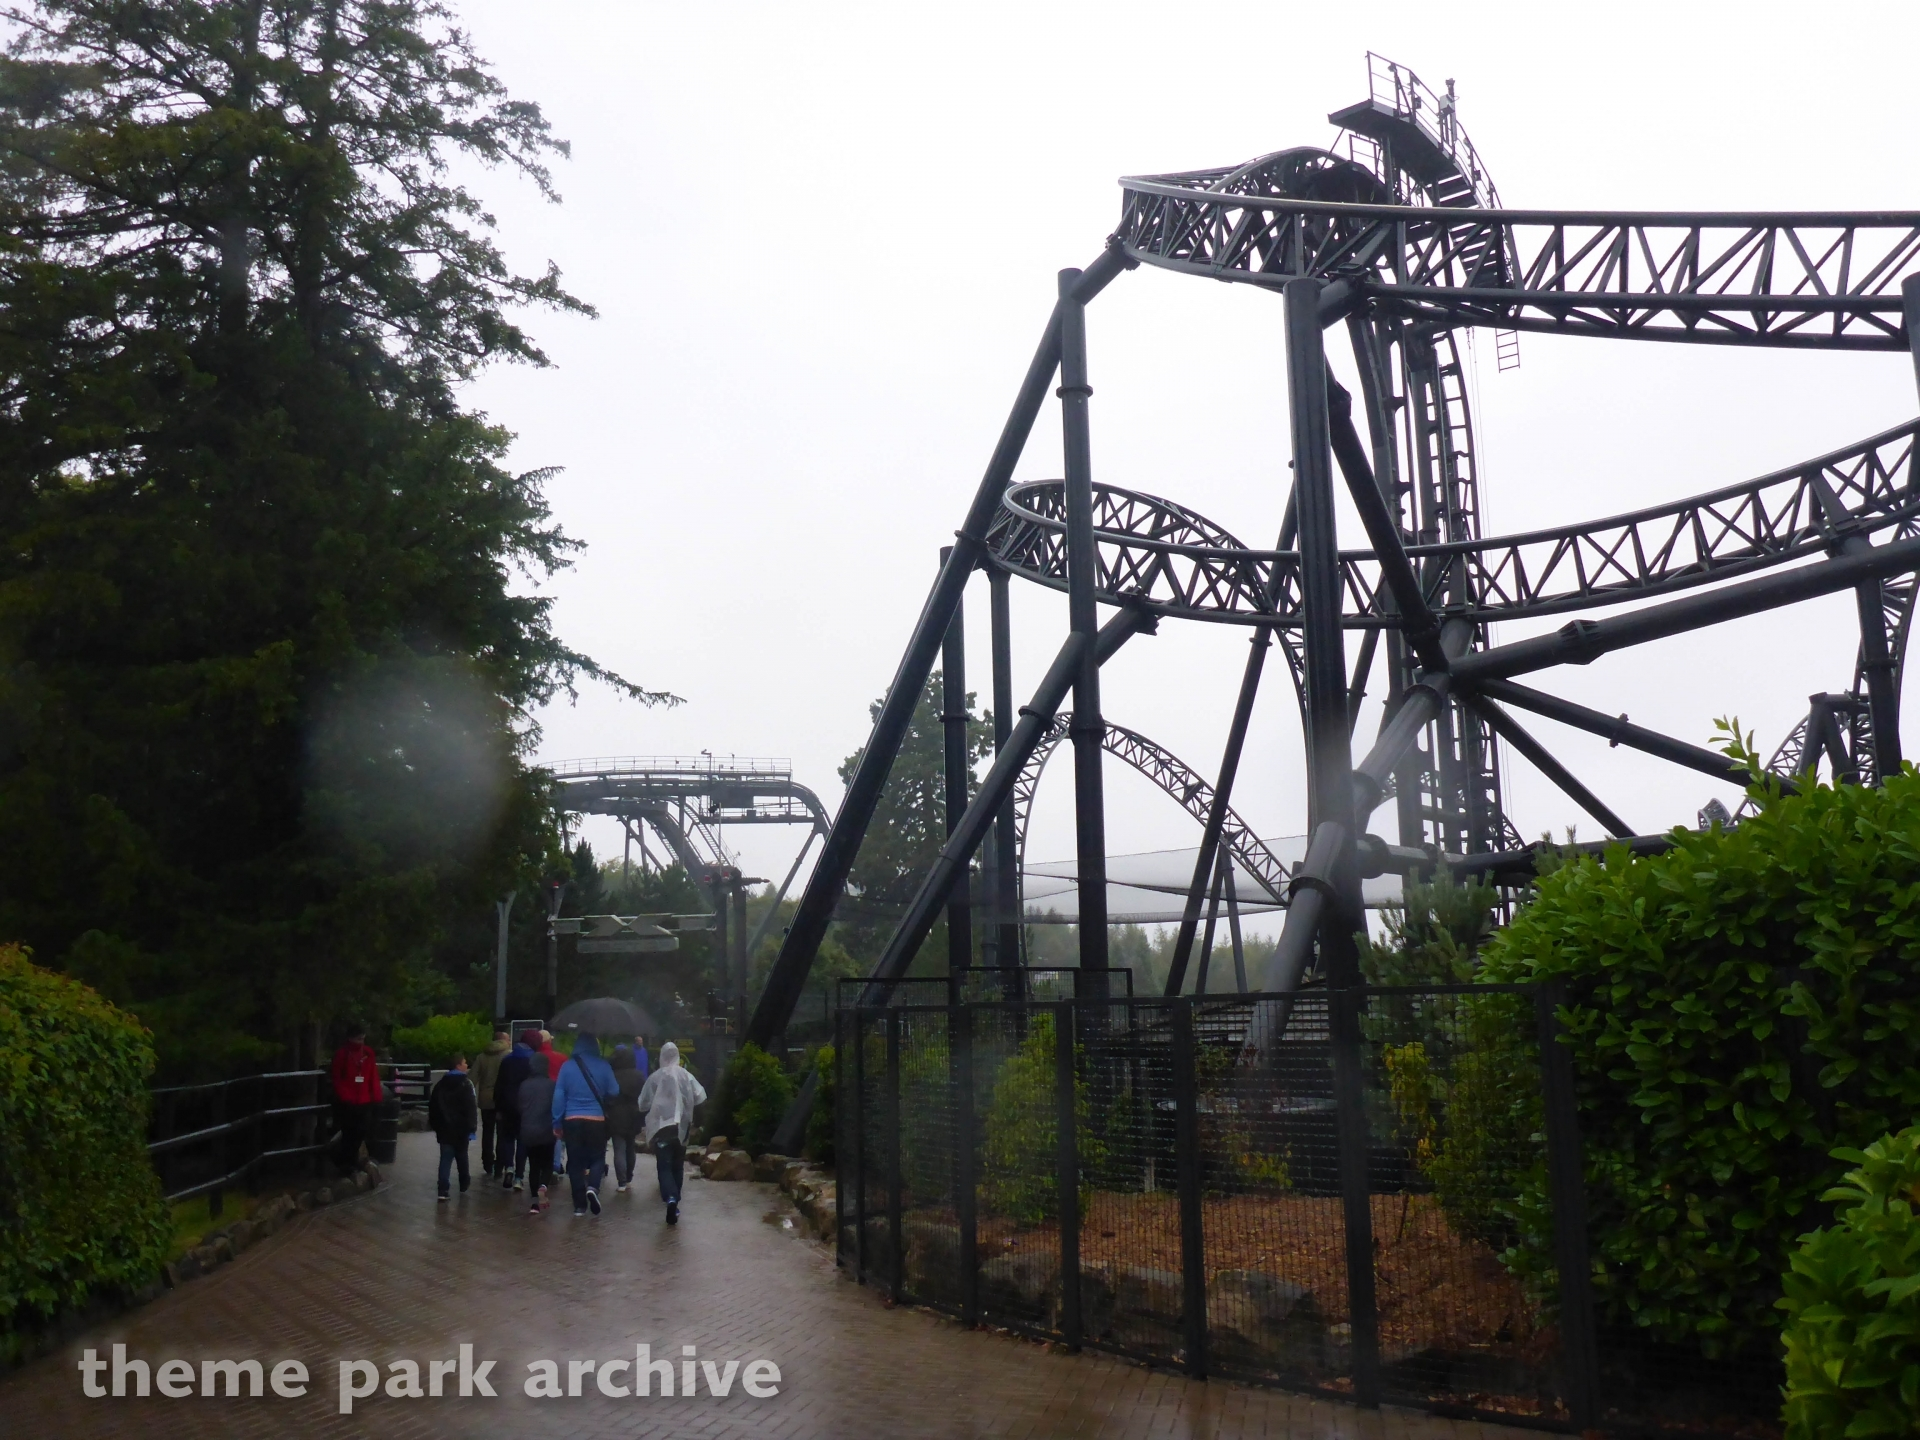 X Sector at Alton Towers